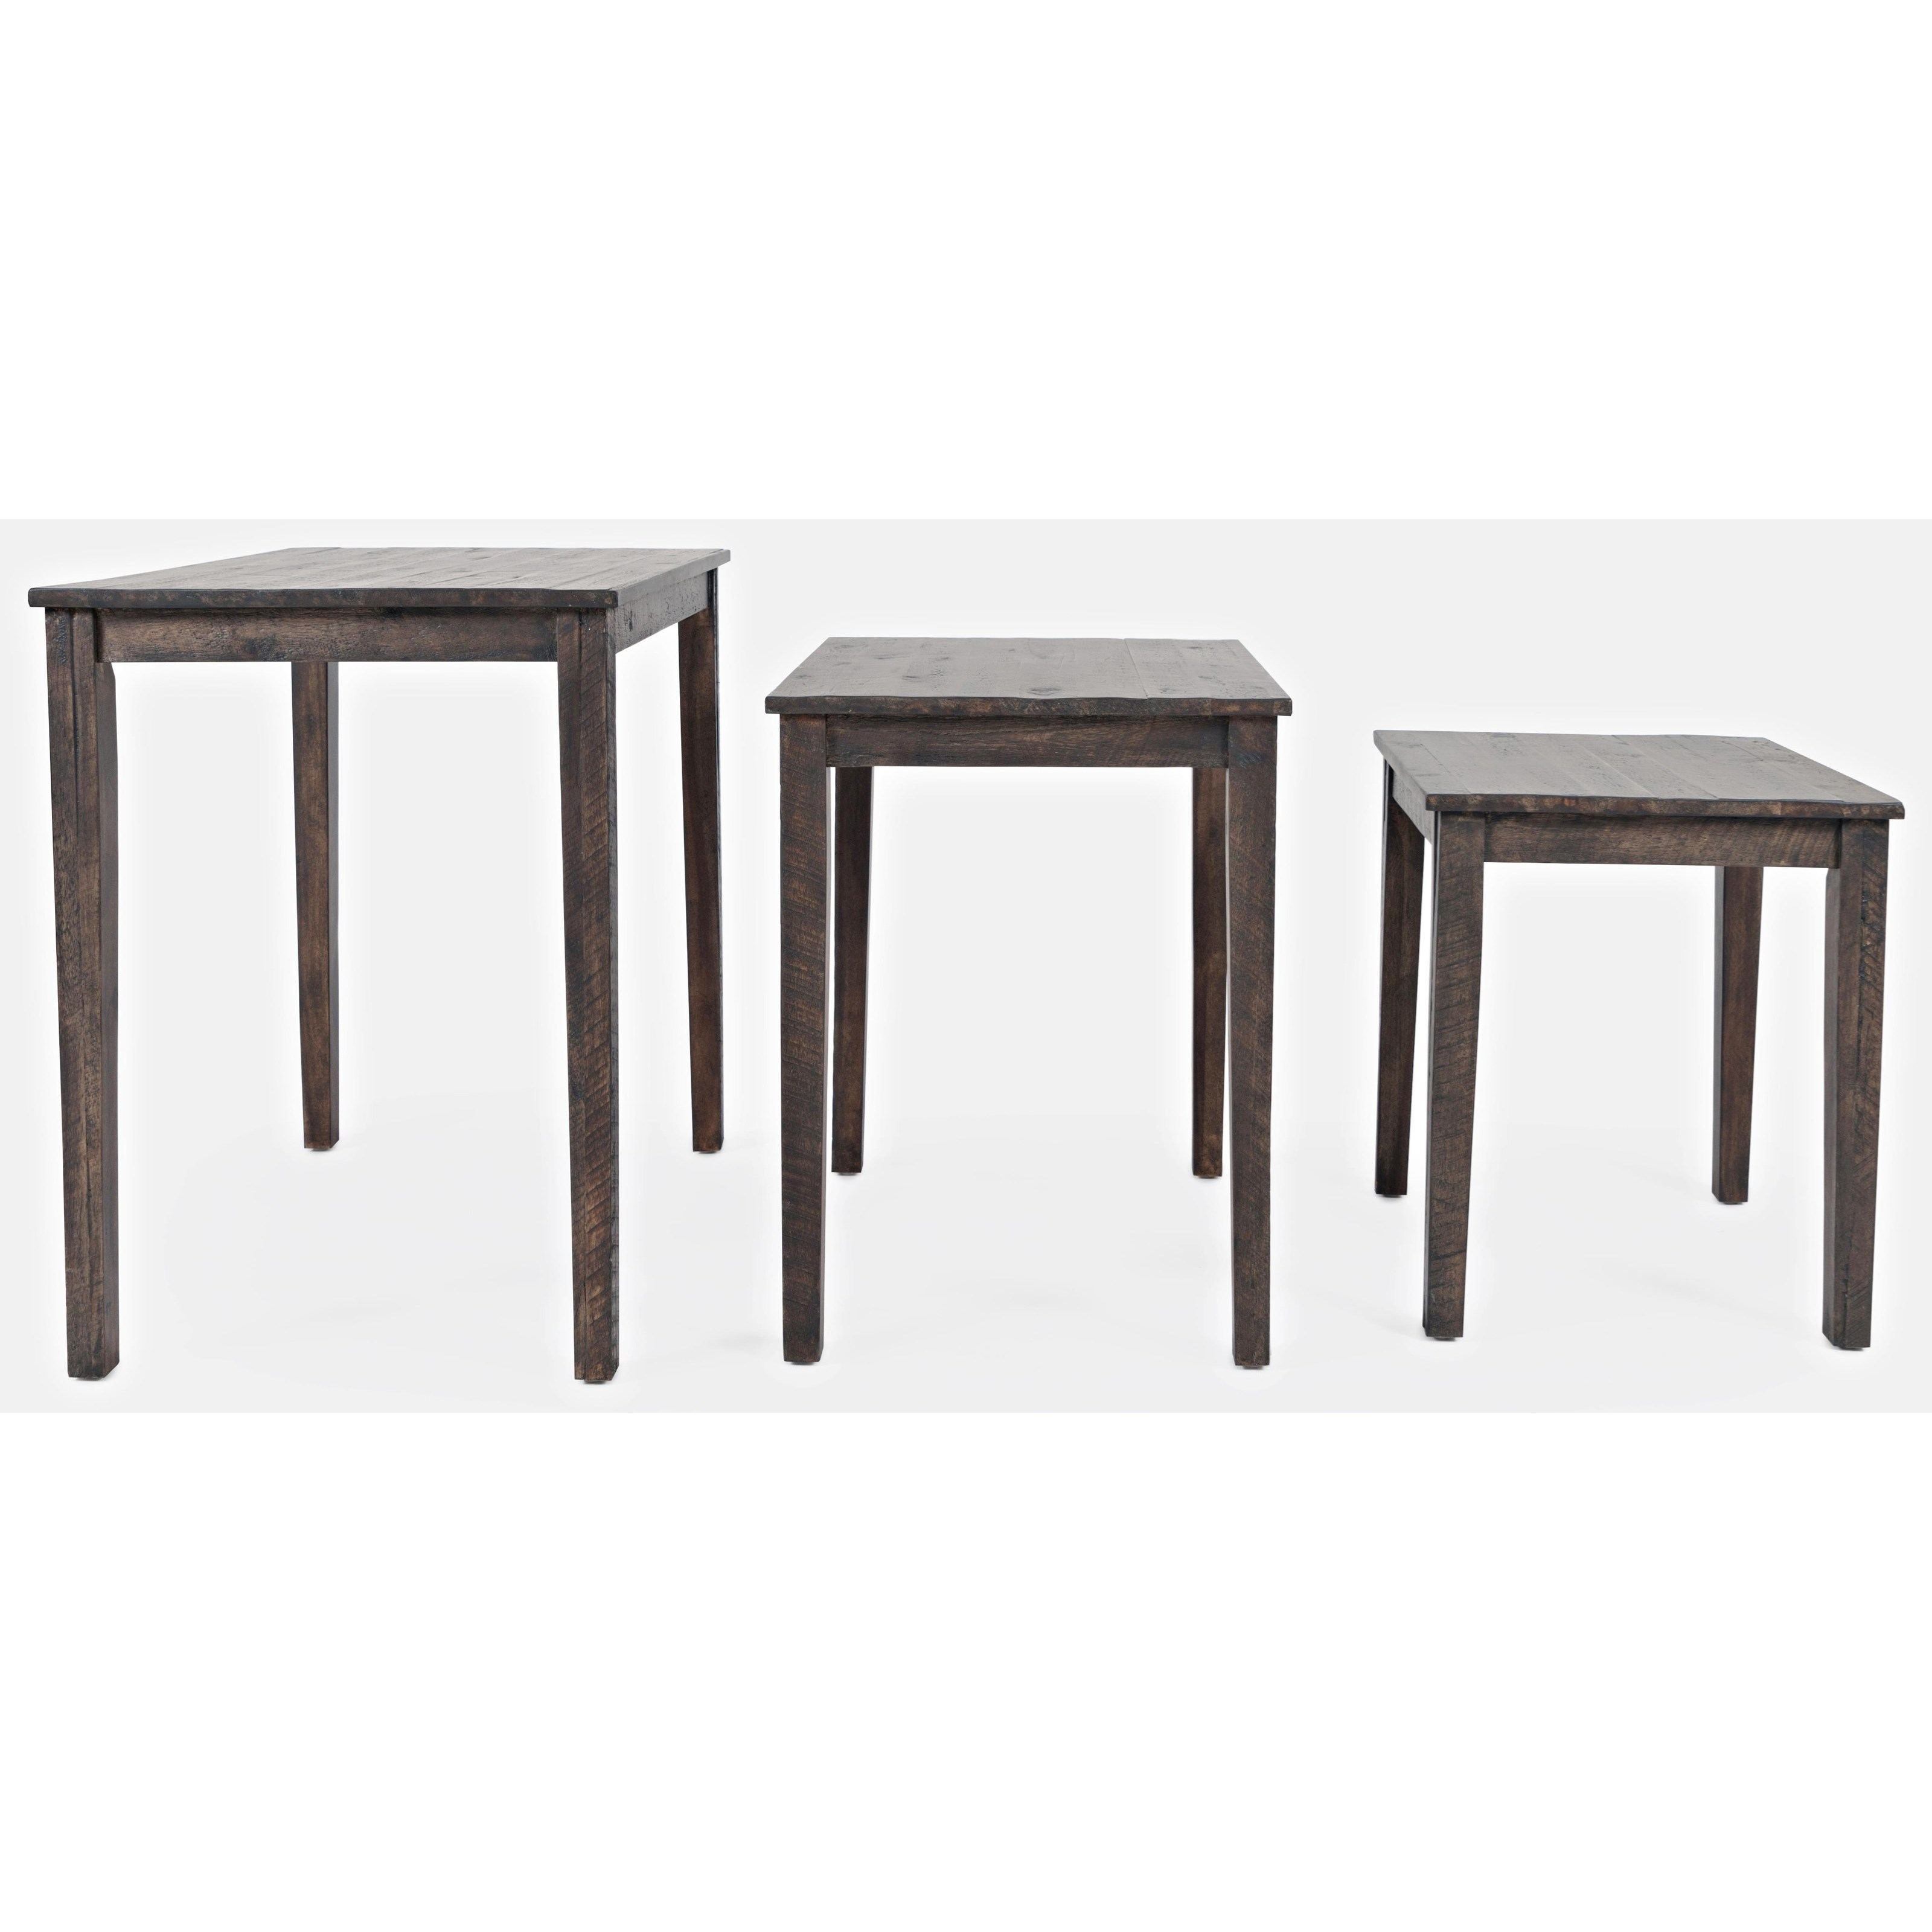 Furniture Nest Of 3 Tables Wood Coffee Table Set End Side Table Nesting Kit With Solid Leg Home Furniture Diy Quatrok Com Br